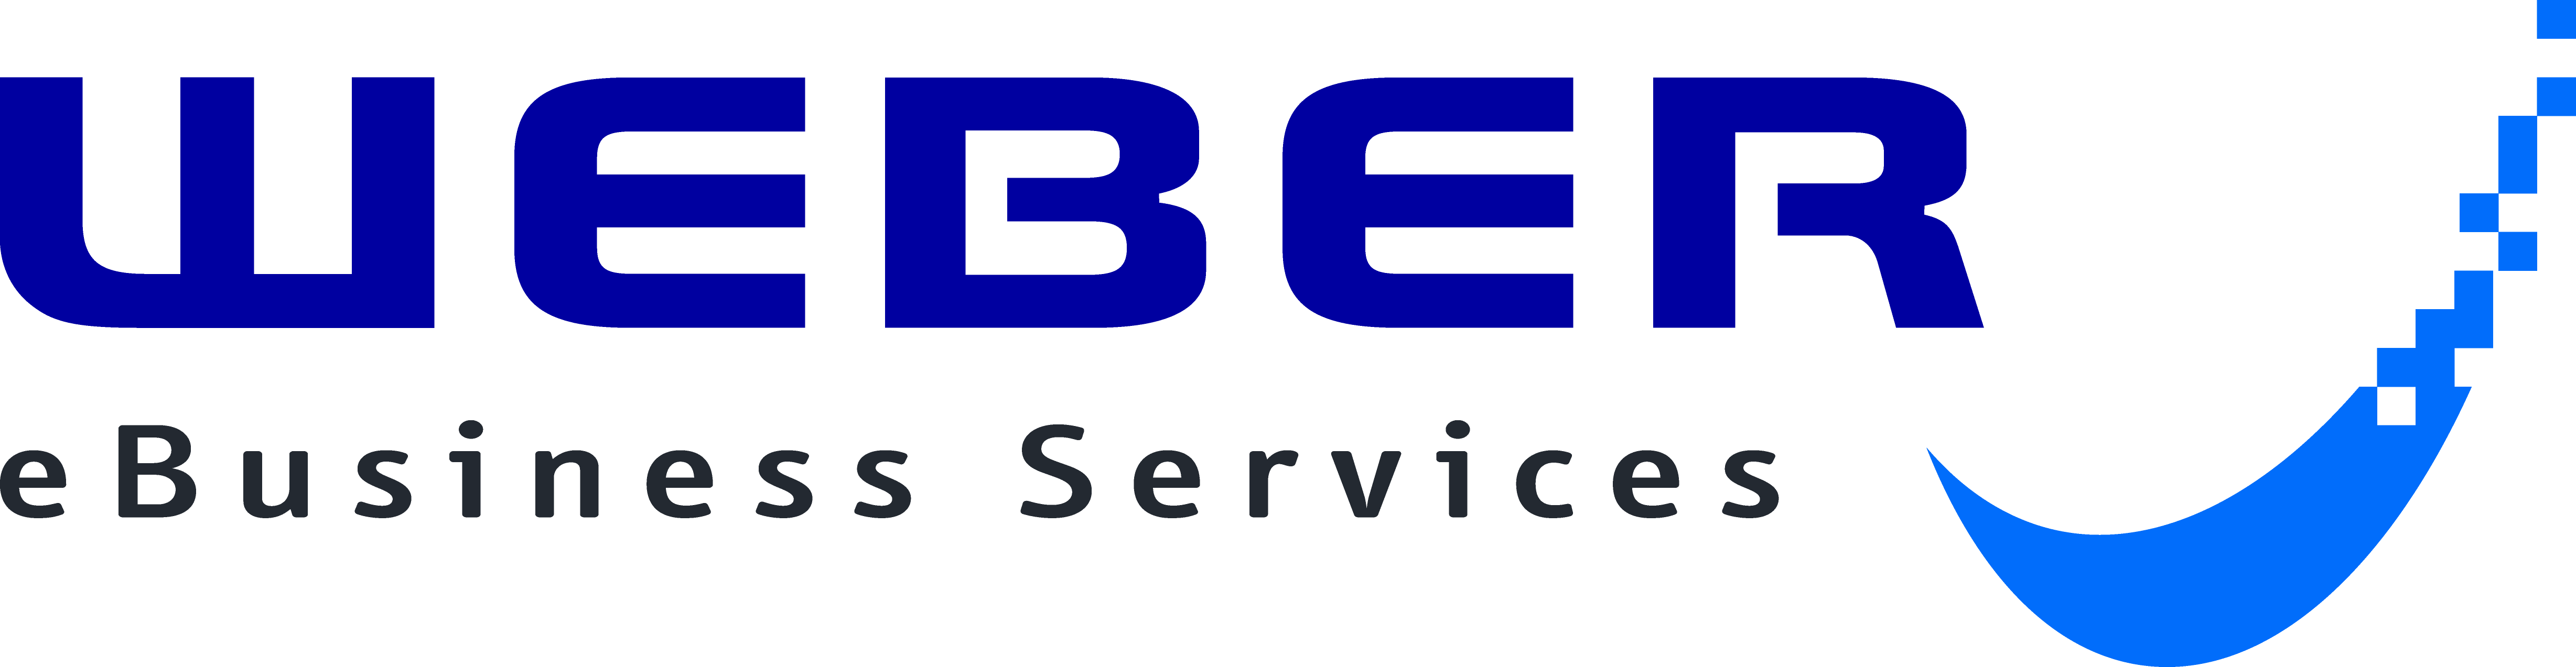 Weber eBusiness Services GmbH